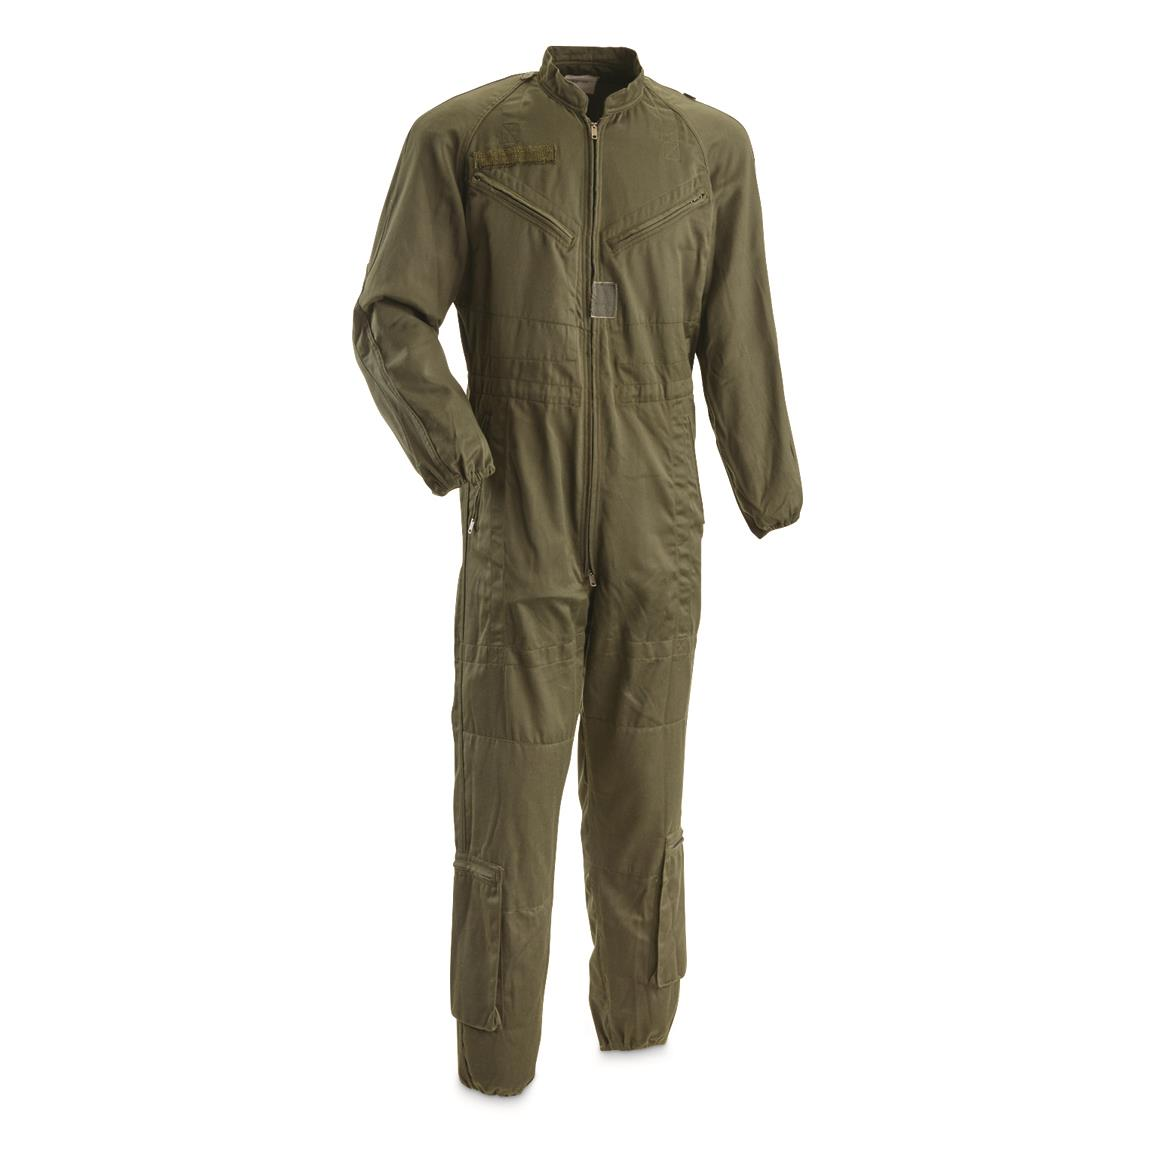 French Military Surplus Tanker Coveralls, Like New